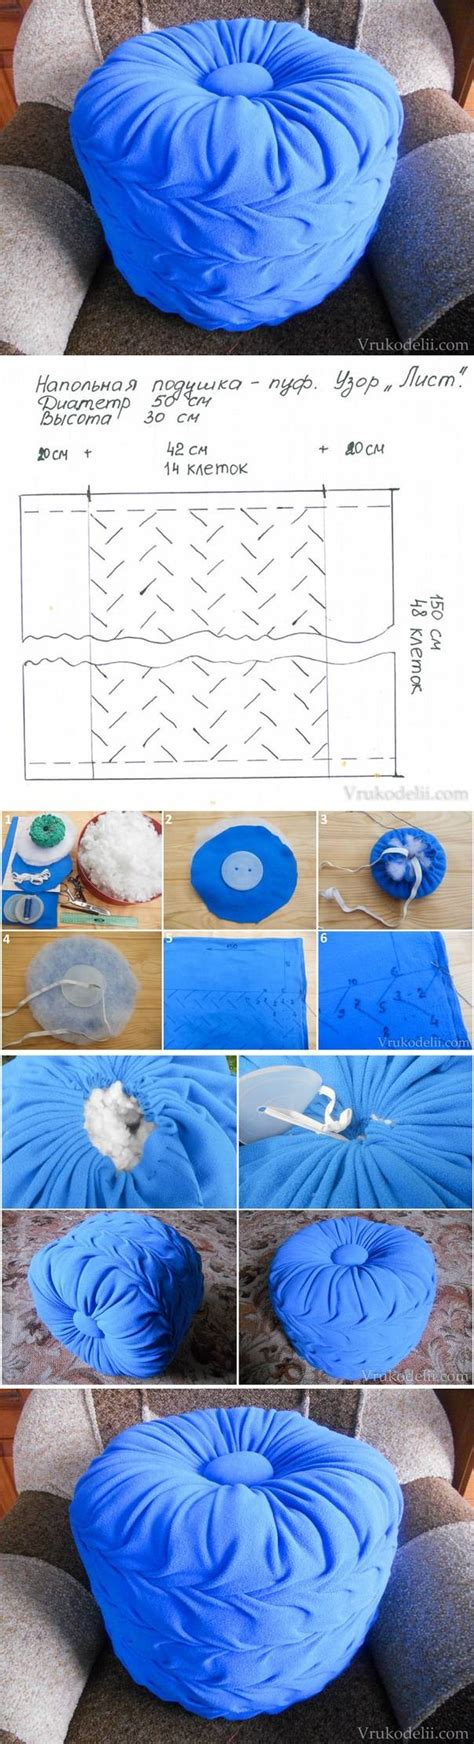 How To Hump A Pillow Step By Step by How To Make Living Room Floor Pillow Puff Step By Step Diy